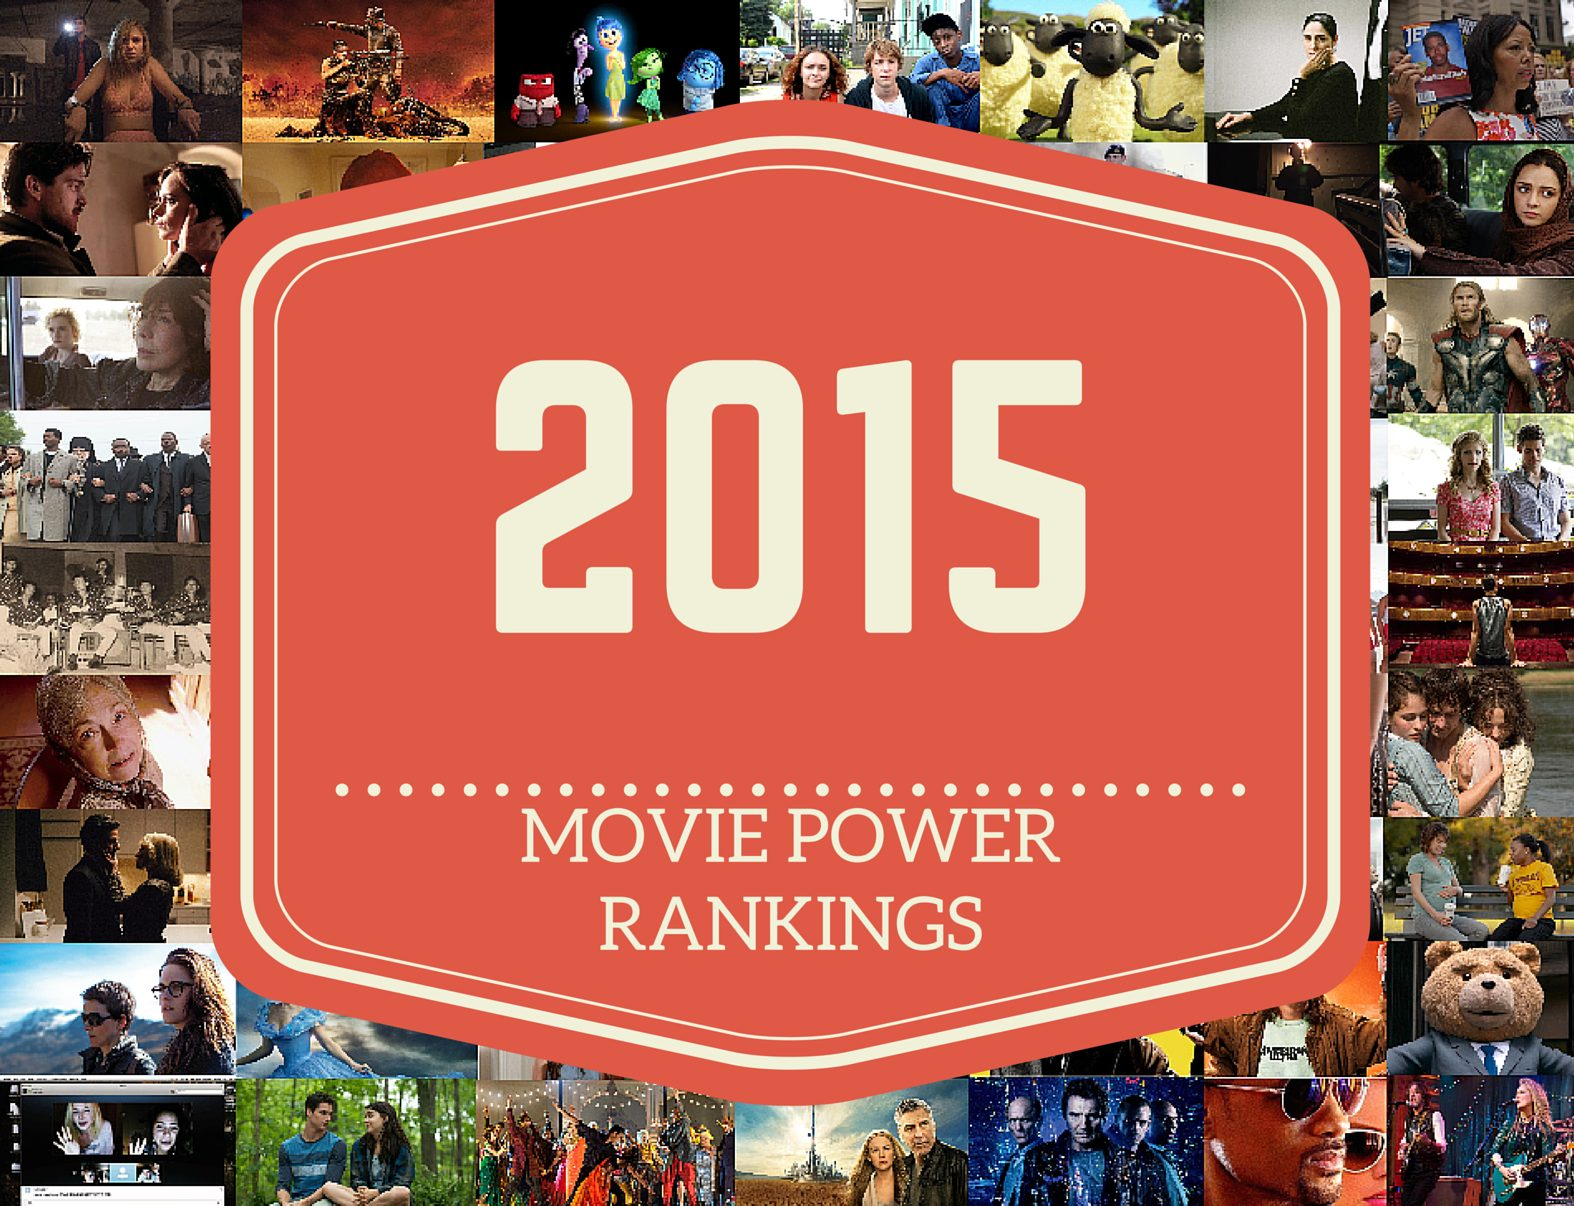 2015 Movie Power Rankings